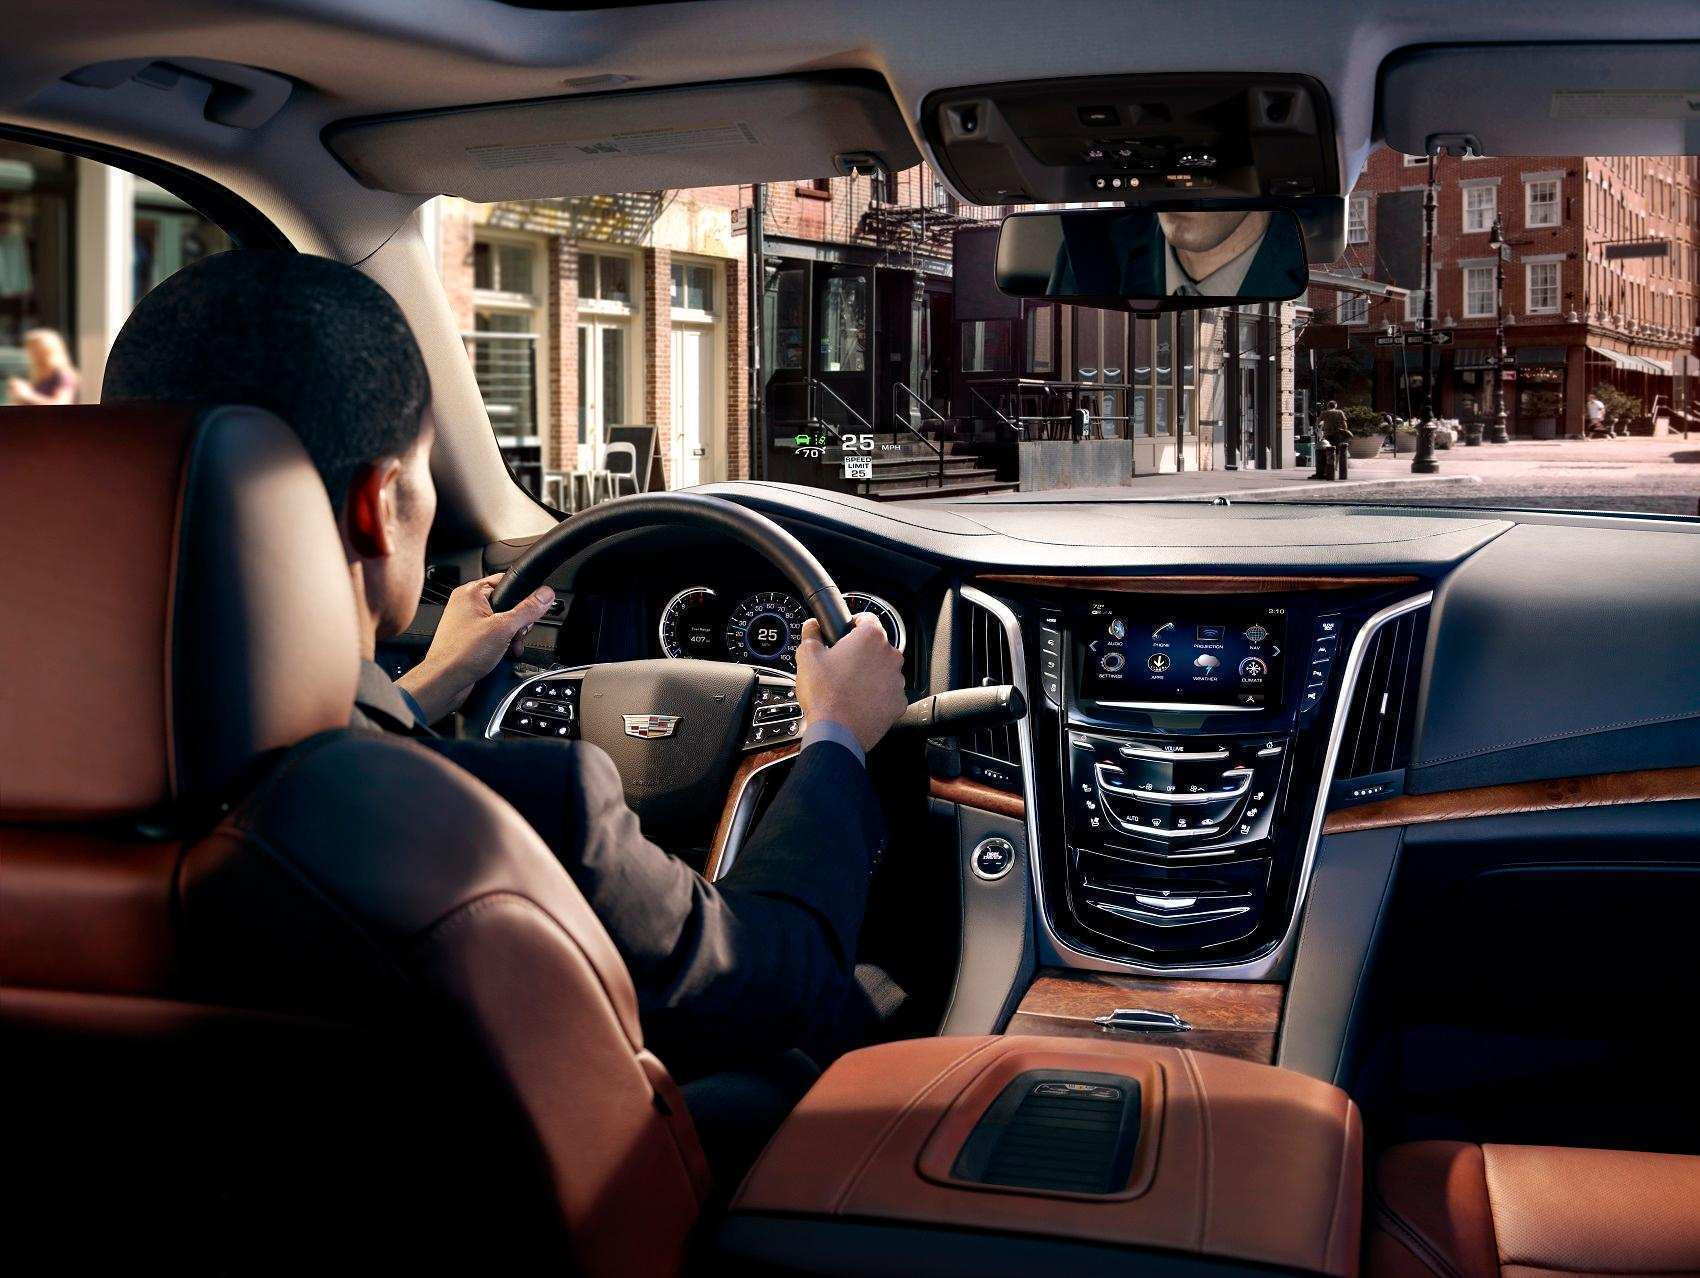 89 The Best 2019 Cadillac Escalade Interior Exterior And Interior